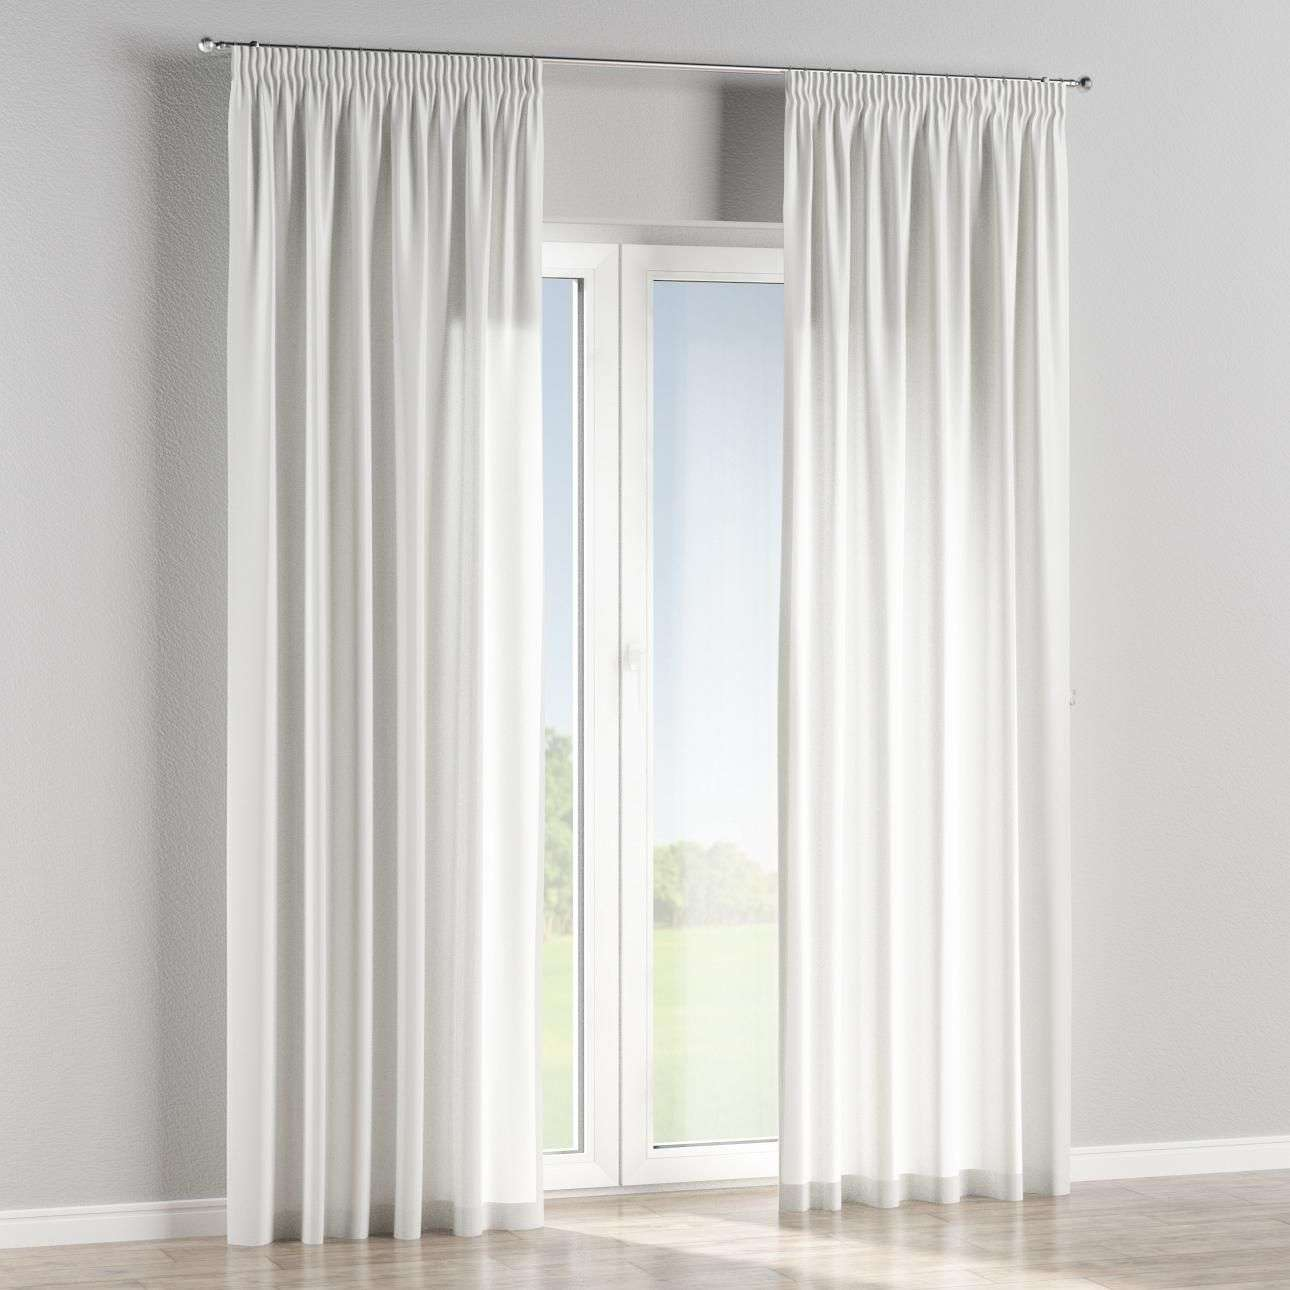 Pencil pleat lined curtains in collection Comic Book & Geo Prints, fabric: 135-07